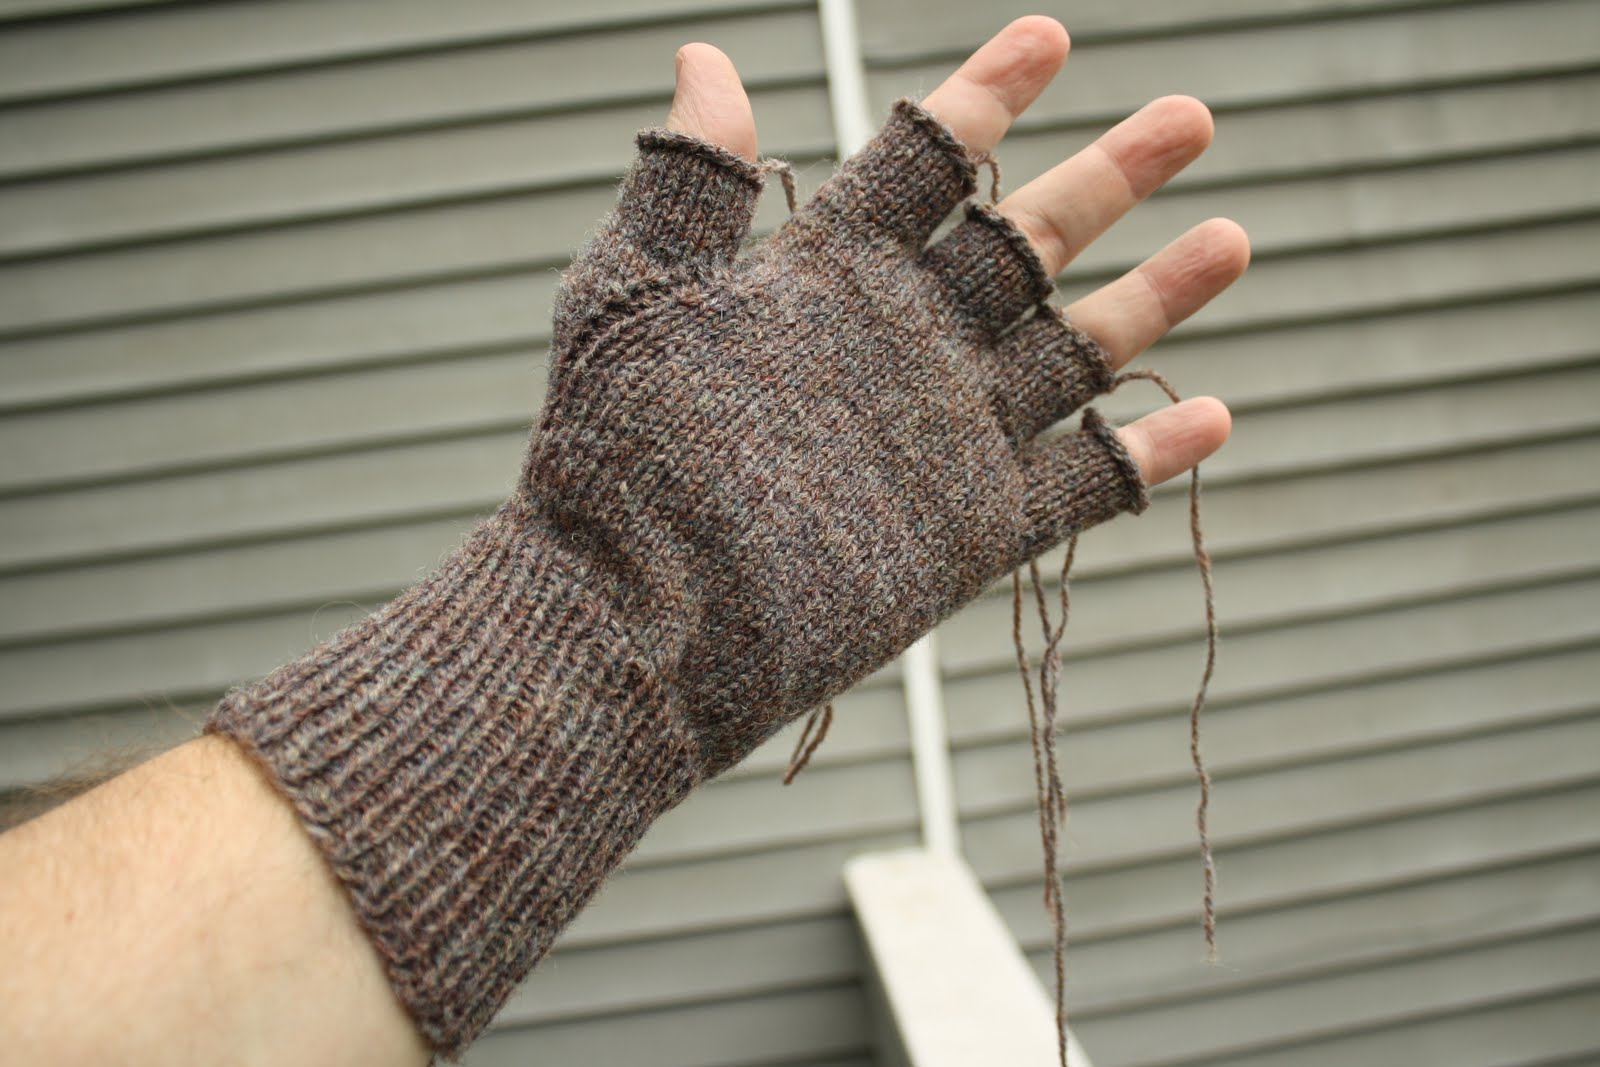 Knit Fingerless Gloves Pattern Free : free knit fingerless glove pattern k--k.club 2017